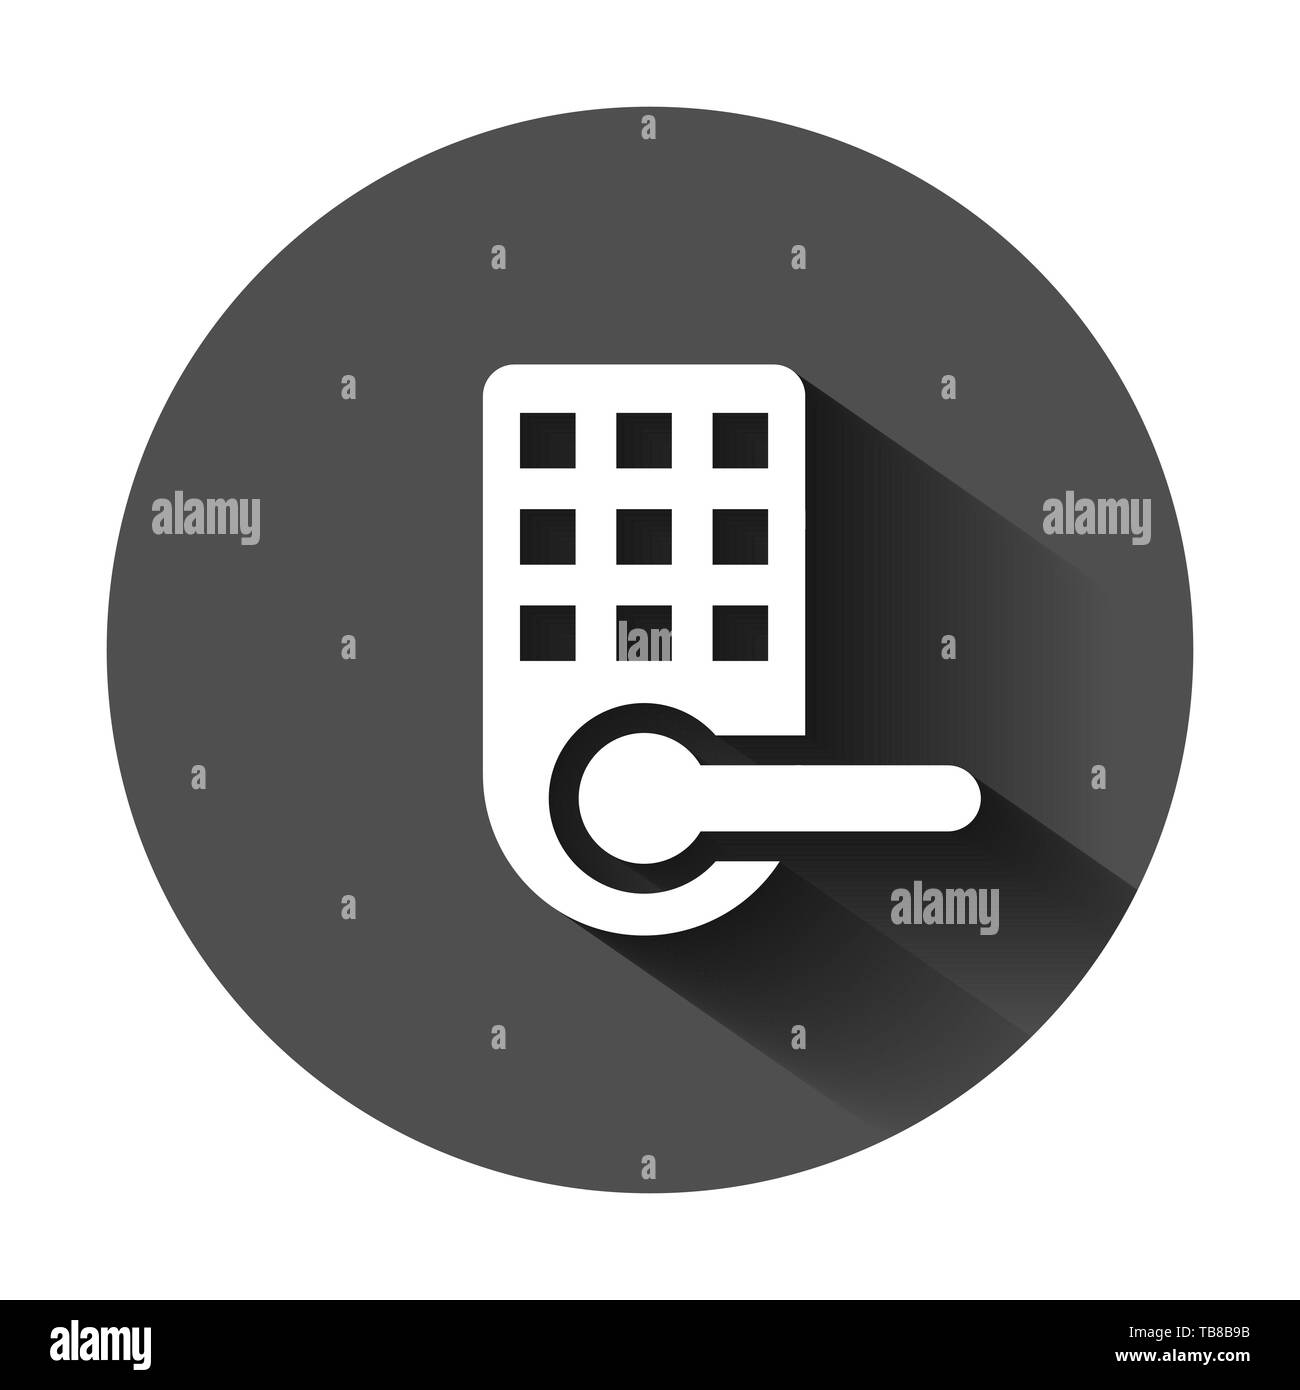 Wireless door lock sign icon in flat style. Smart home vector illustration on black round background with long shadow. Remote system business concept. - Stock Image